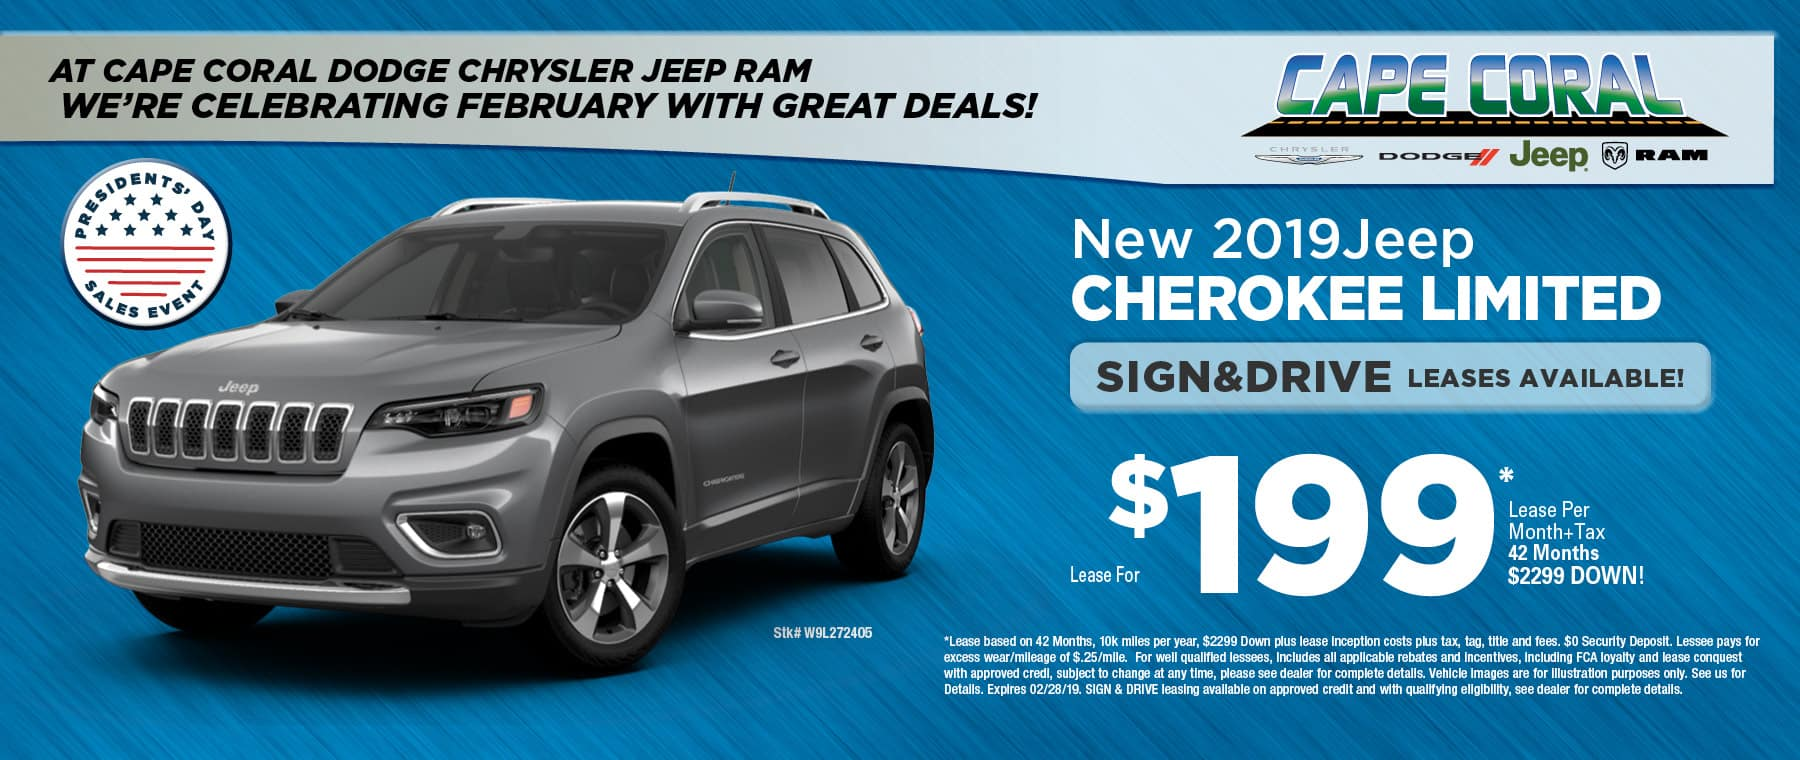 New 2018 Jeep Cherokees - Cape Coral Jeep!